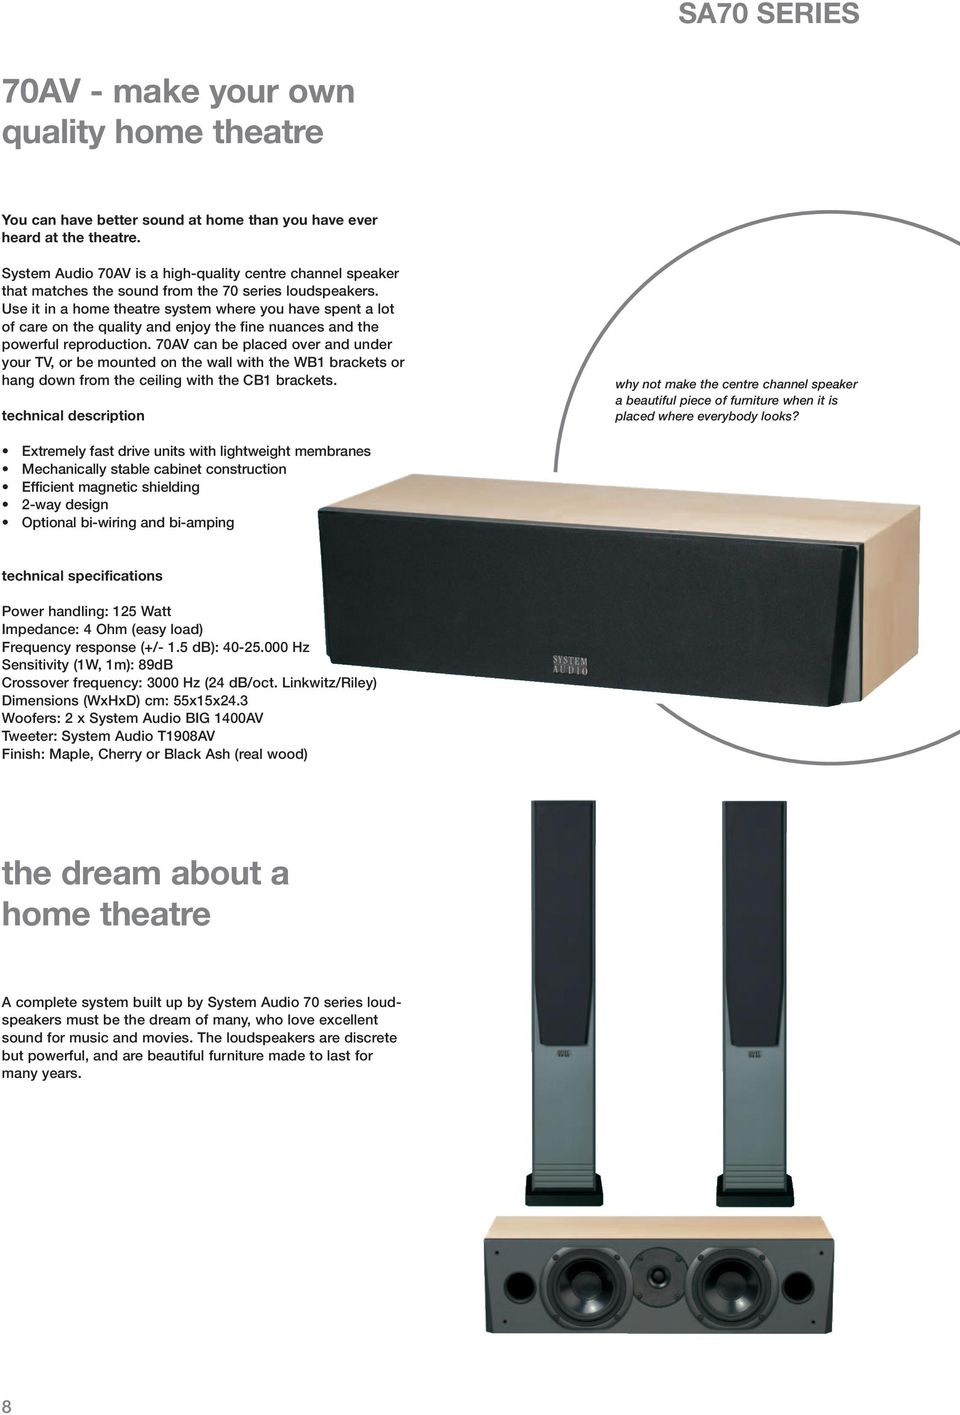 Better Sound Design Pdf Wiring Home Audio Equipment Use It In A Theatre System Where You Have Spent Lot Of Care On